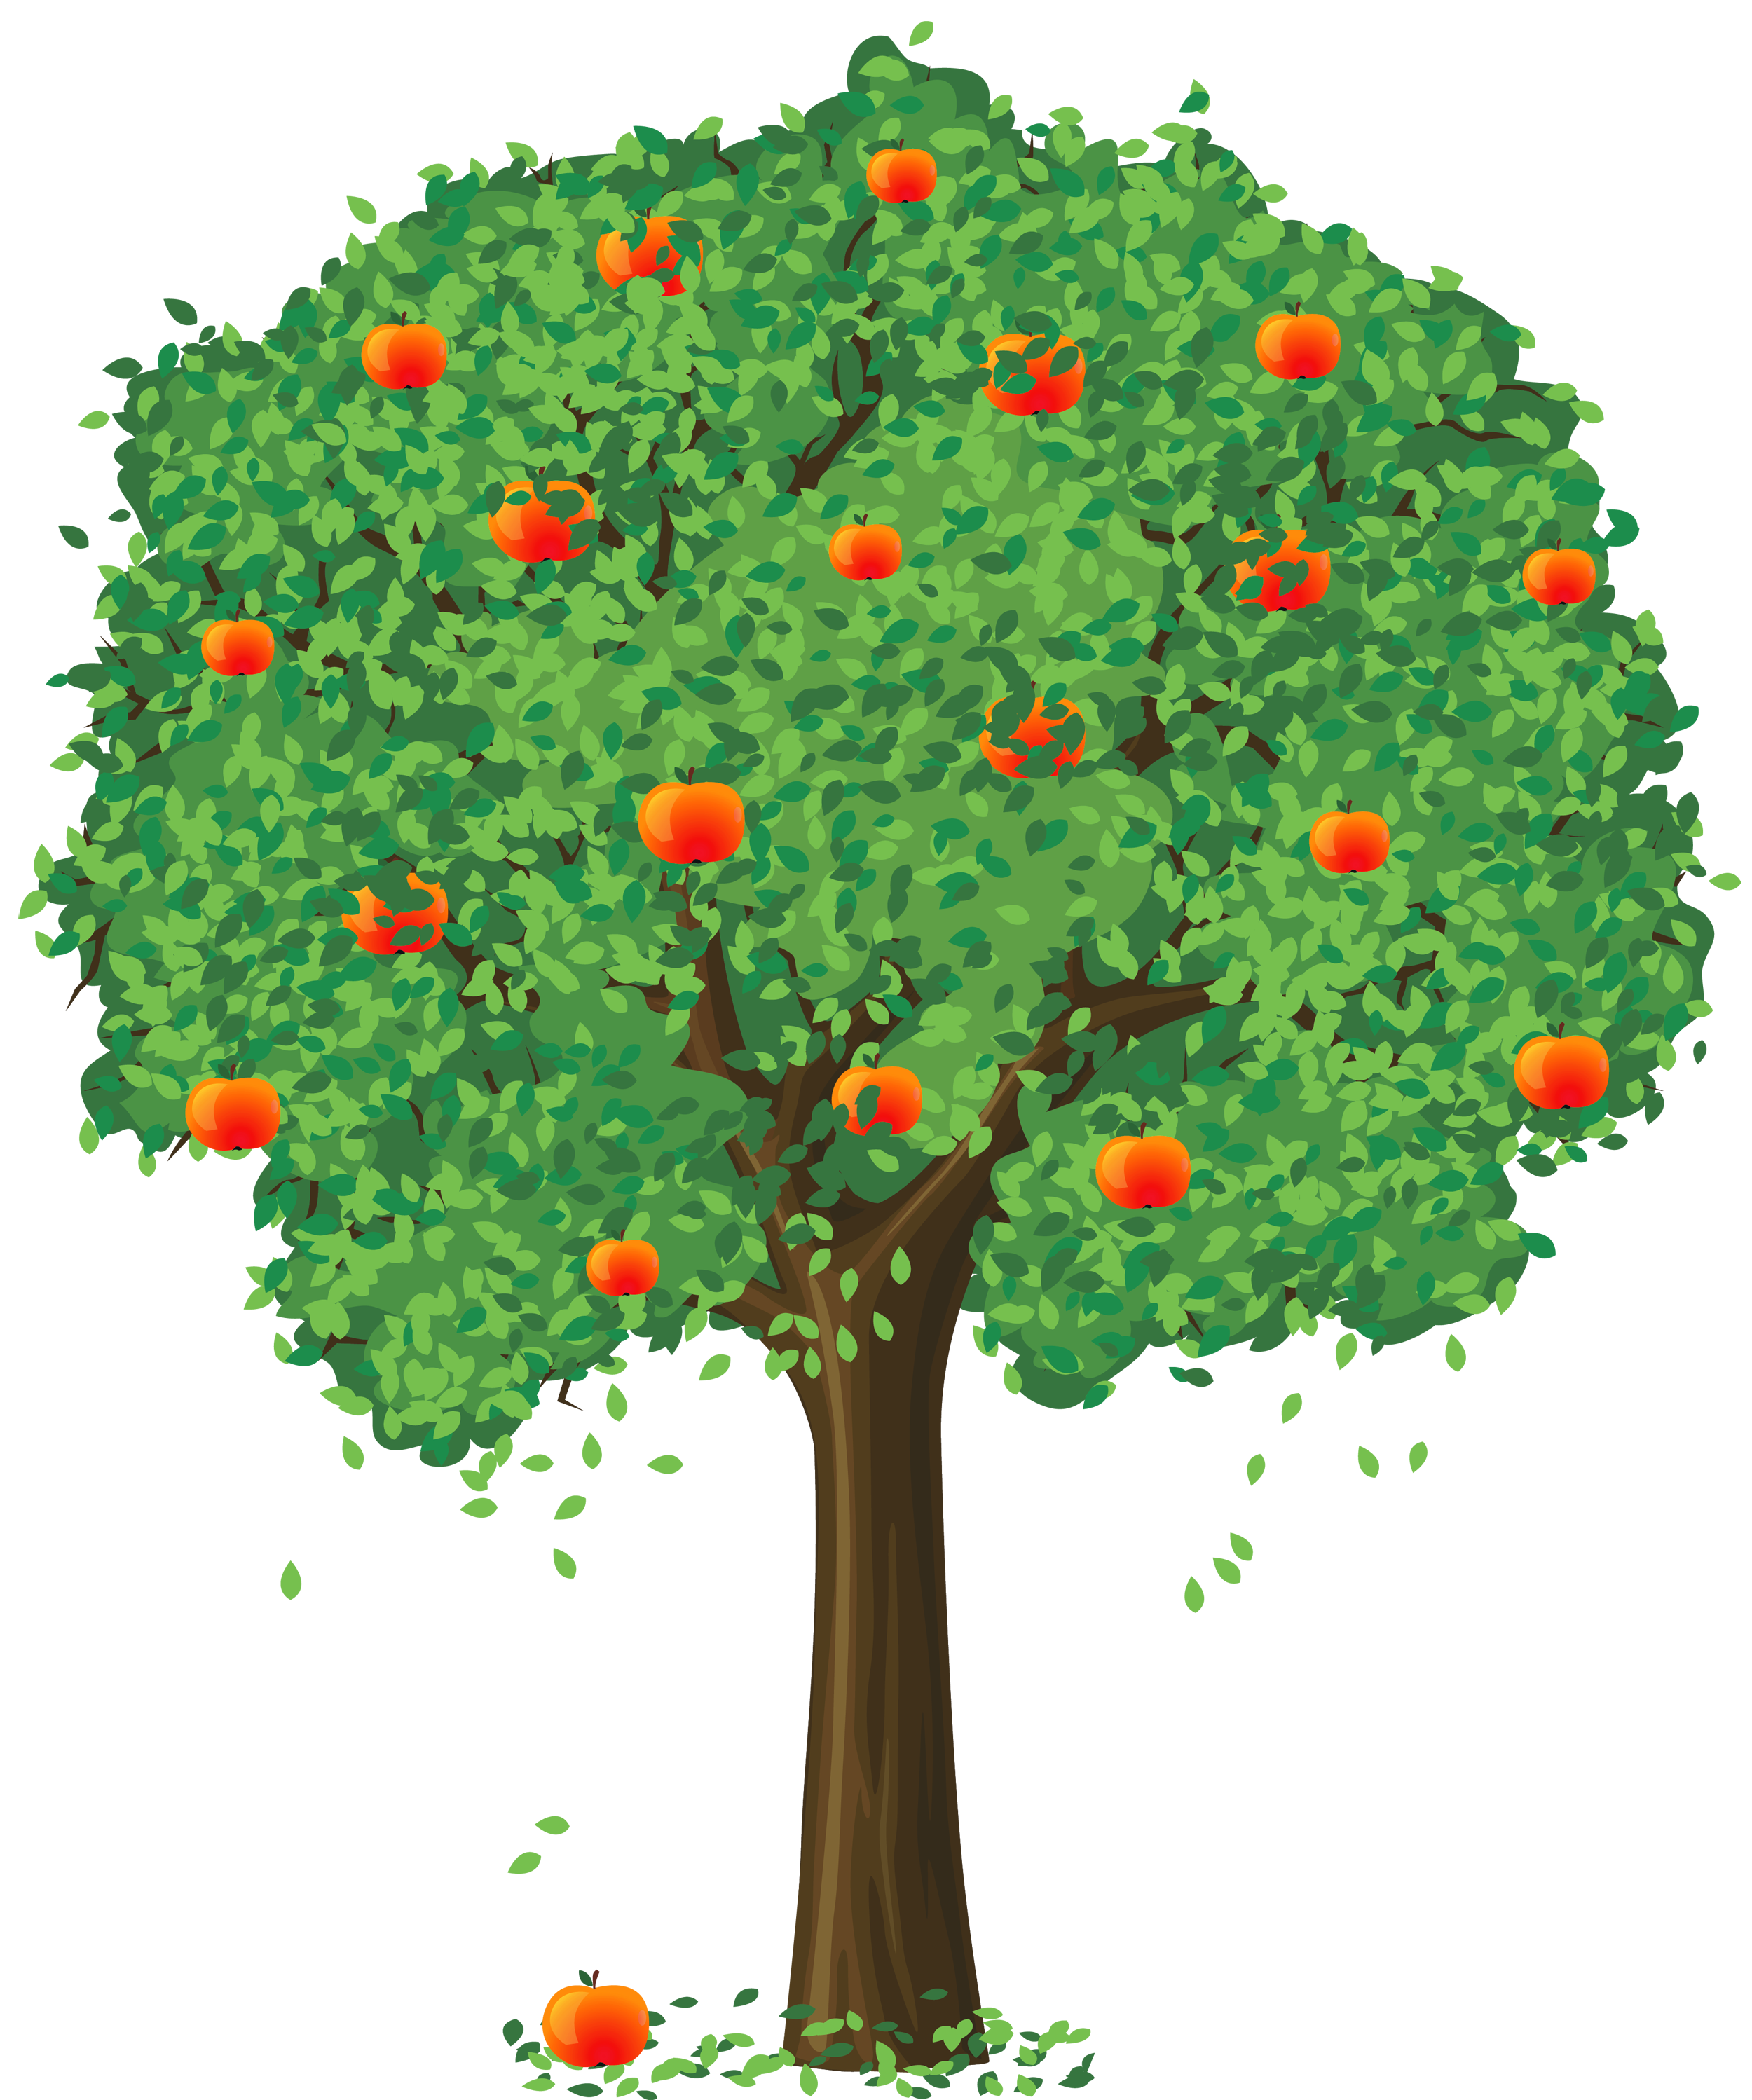 Painted Apple Tree Png Clipar - Apple Tree Clip Art